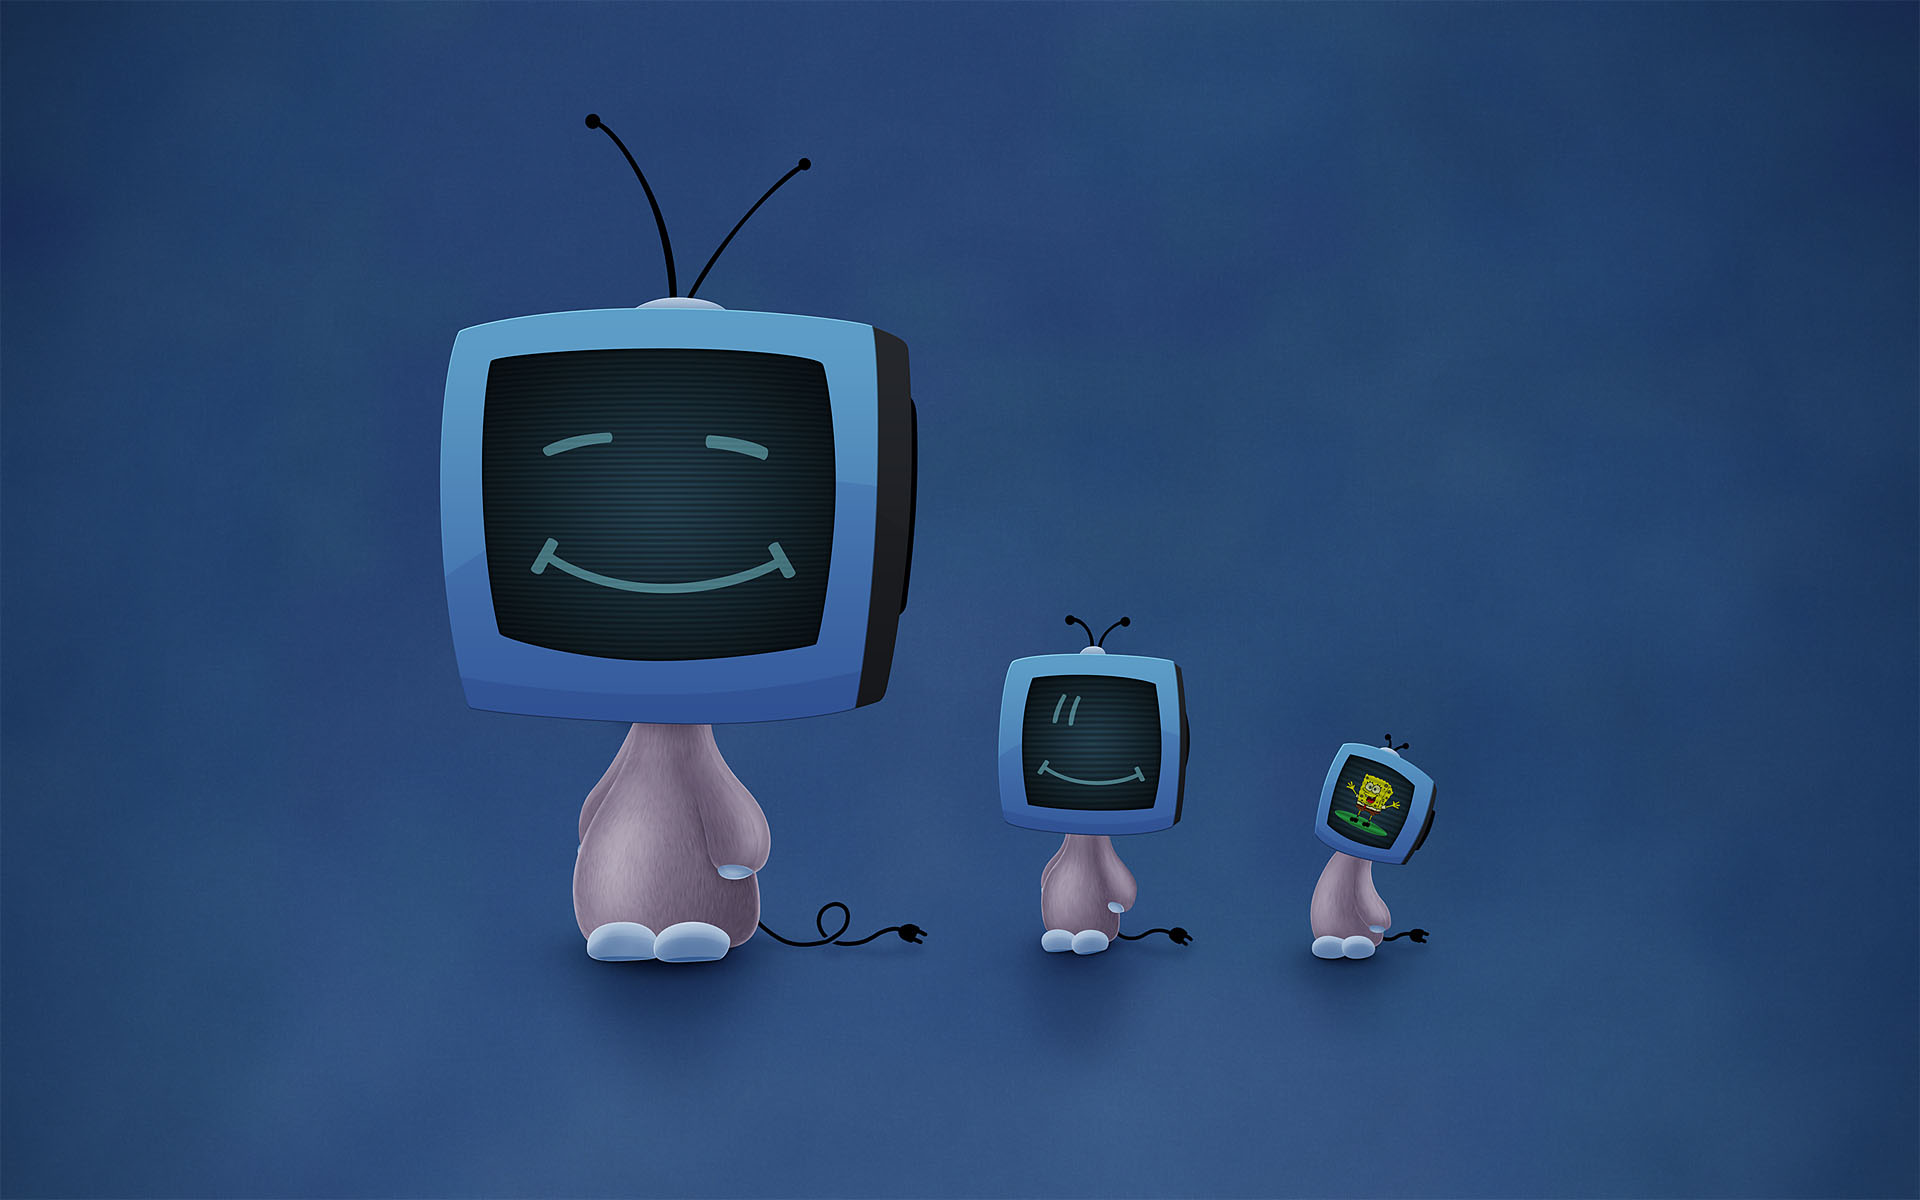 original wallpaper download: Blue TV - 1920x1200